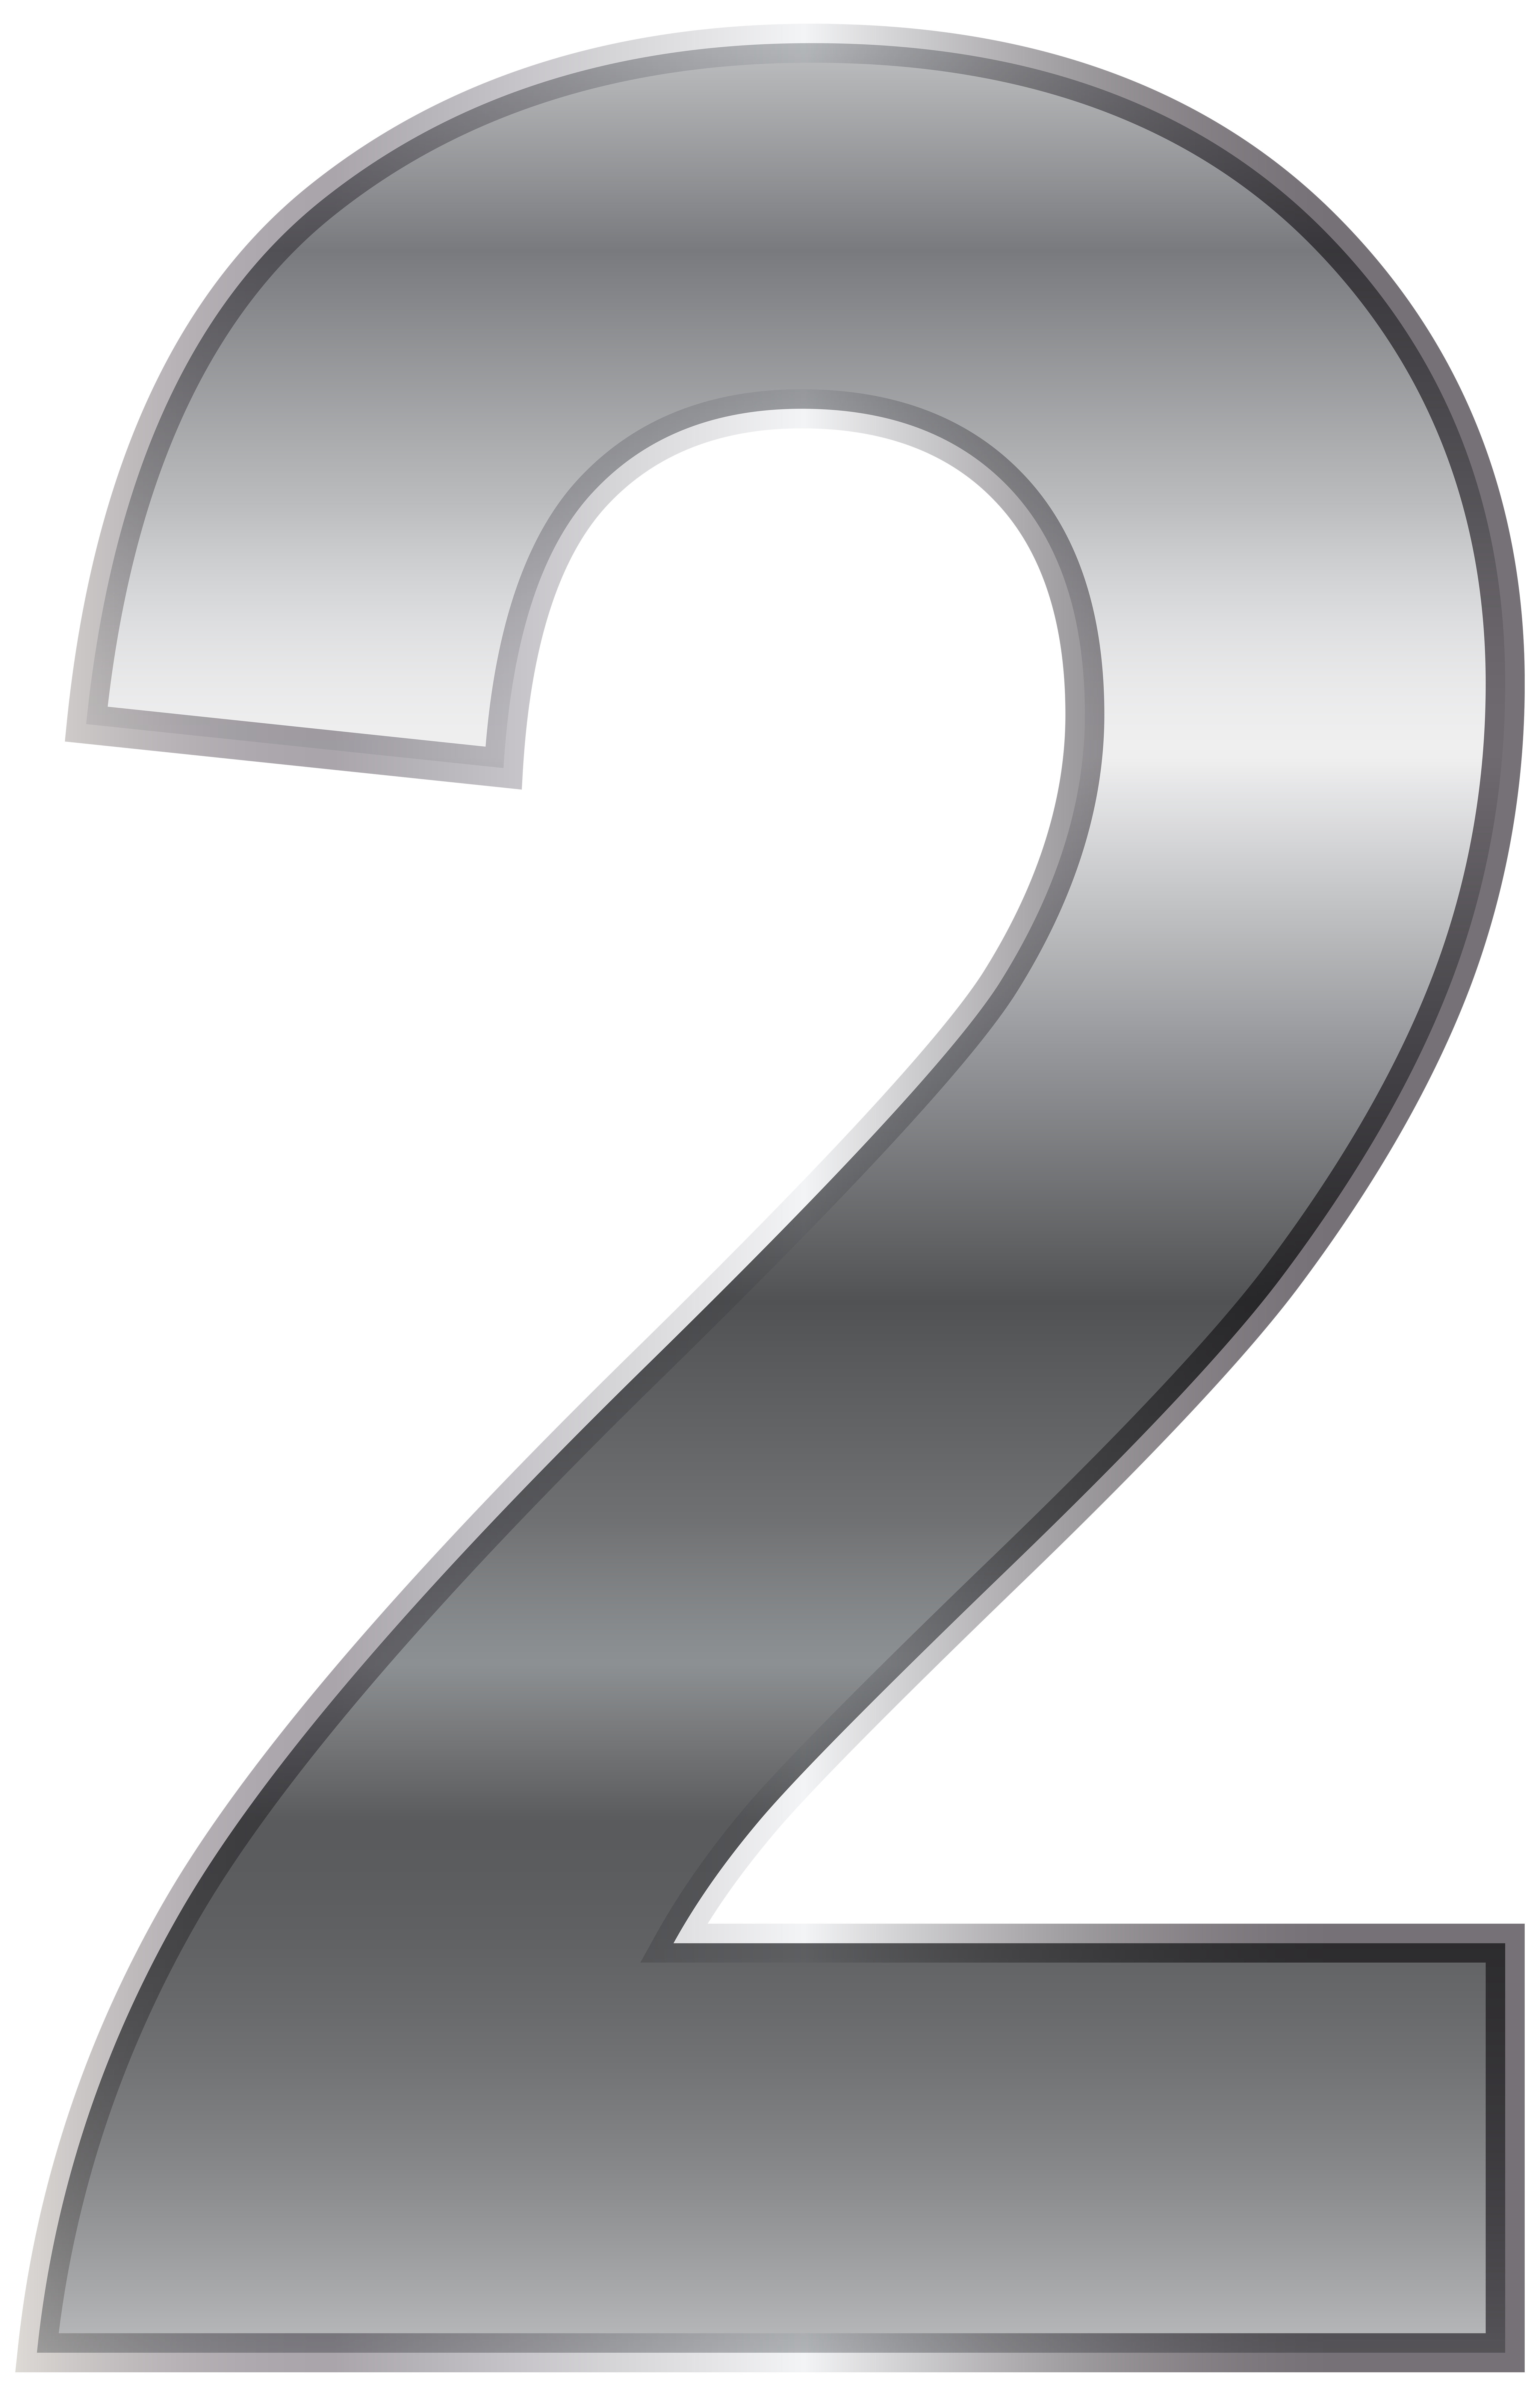 clip art royalty free library Silver number two png. Numbers transparent.